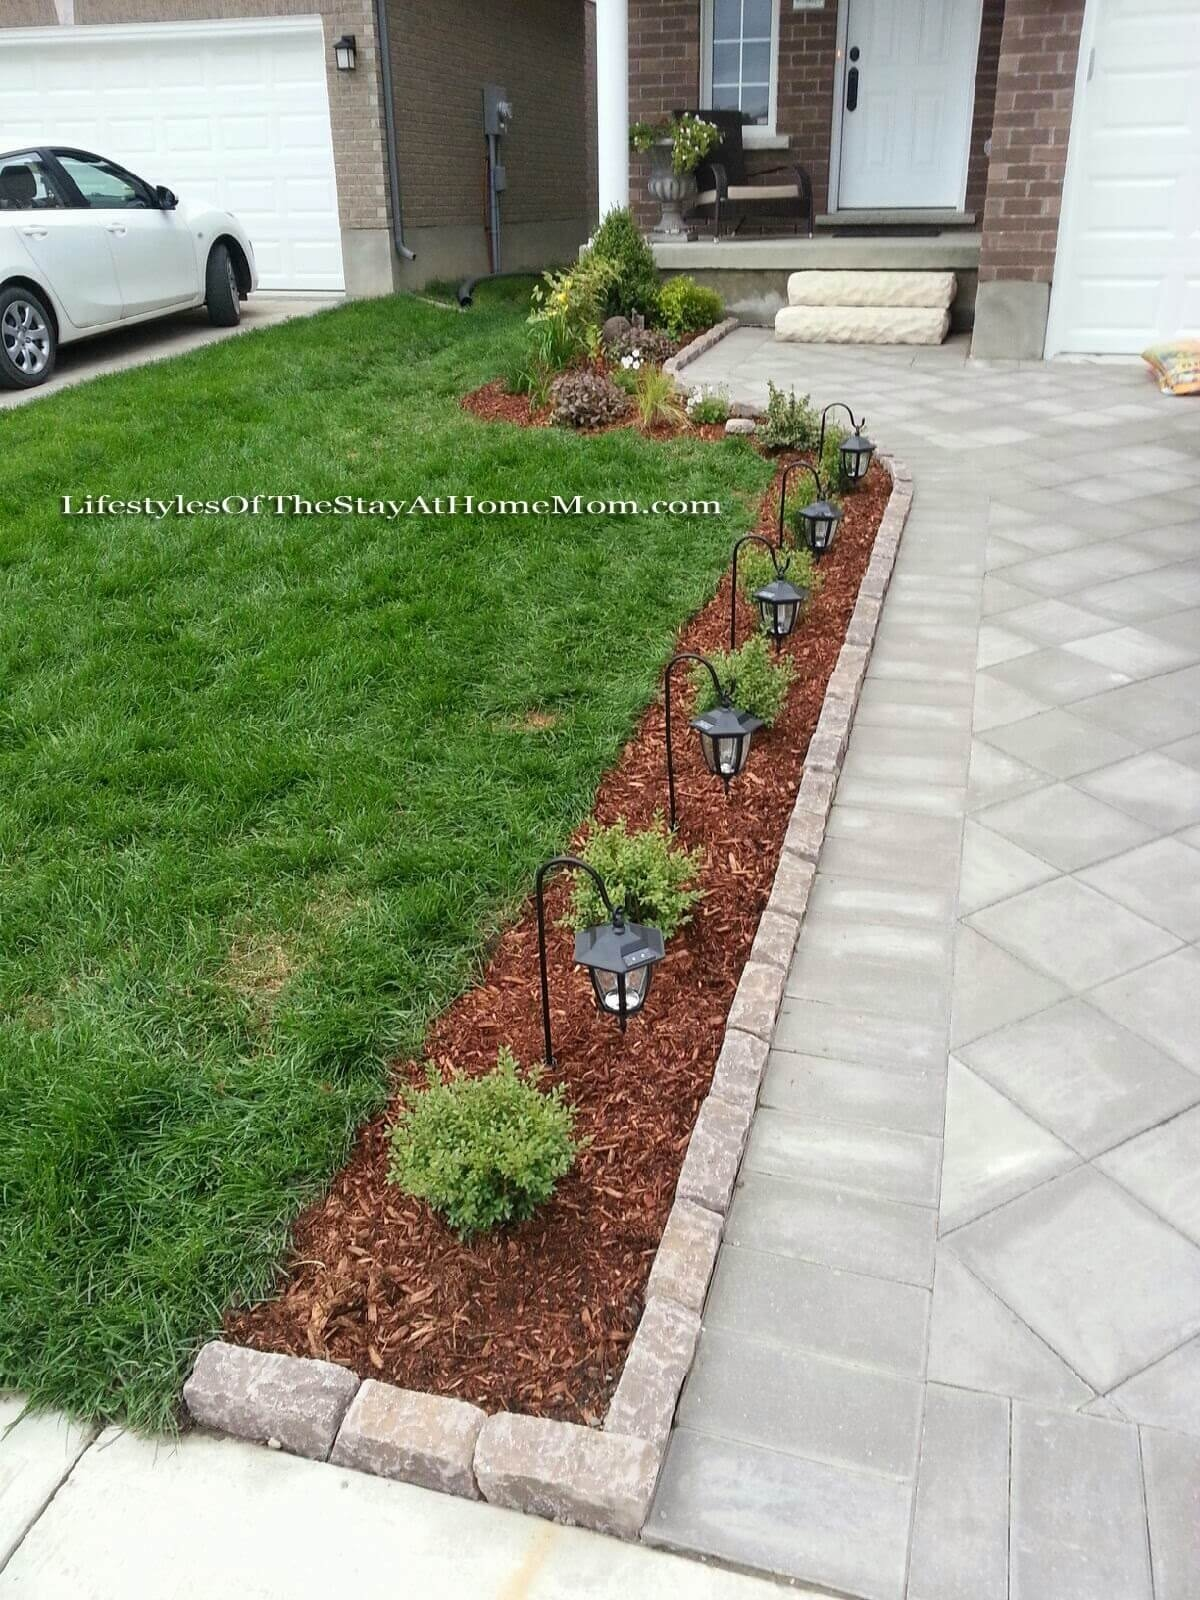 10 Unique Landscaping Ideas For Front Yard 50 best front yard landscaping ideas and garden designs for 2018 10 2021